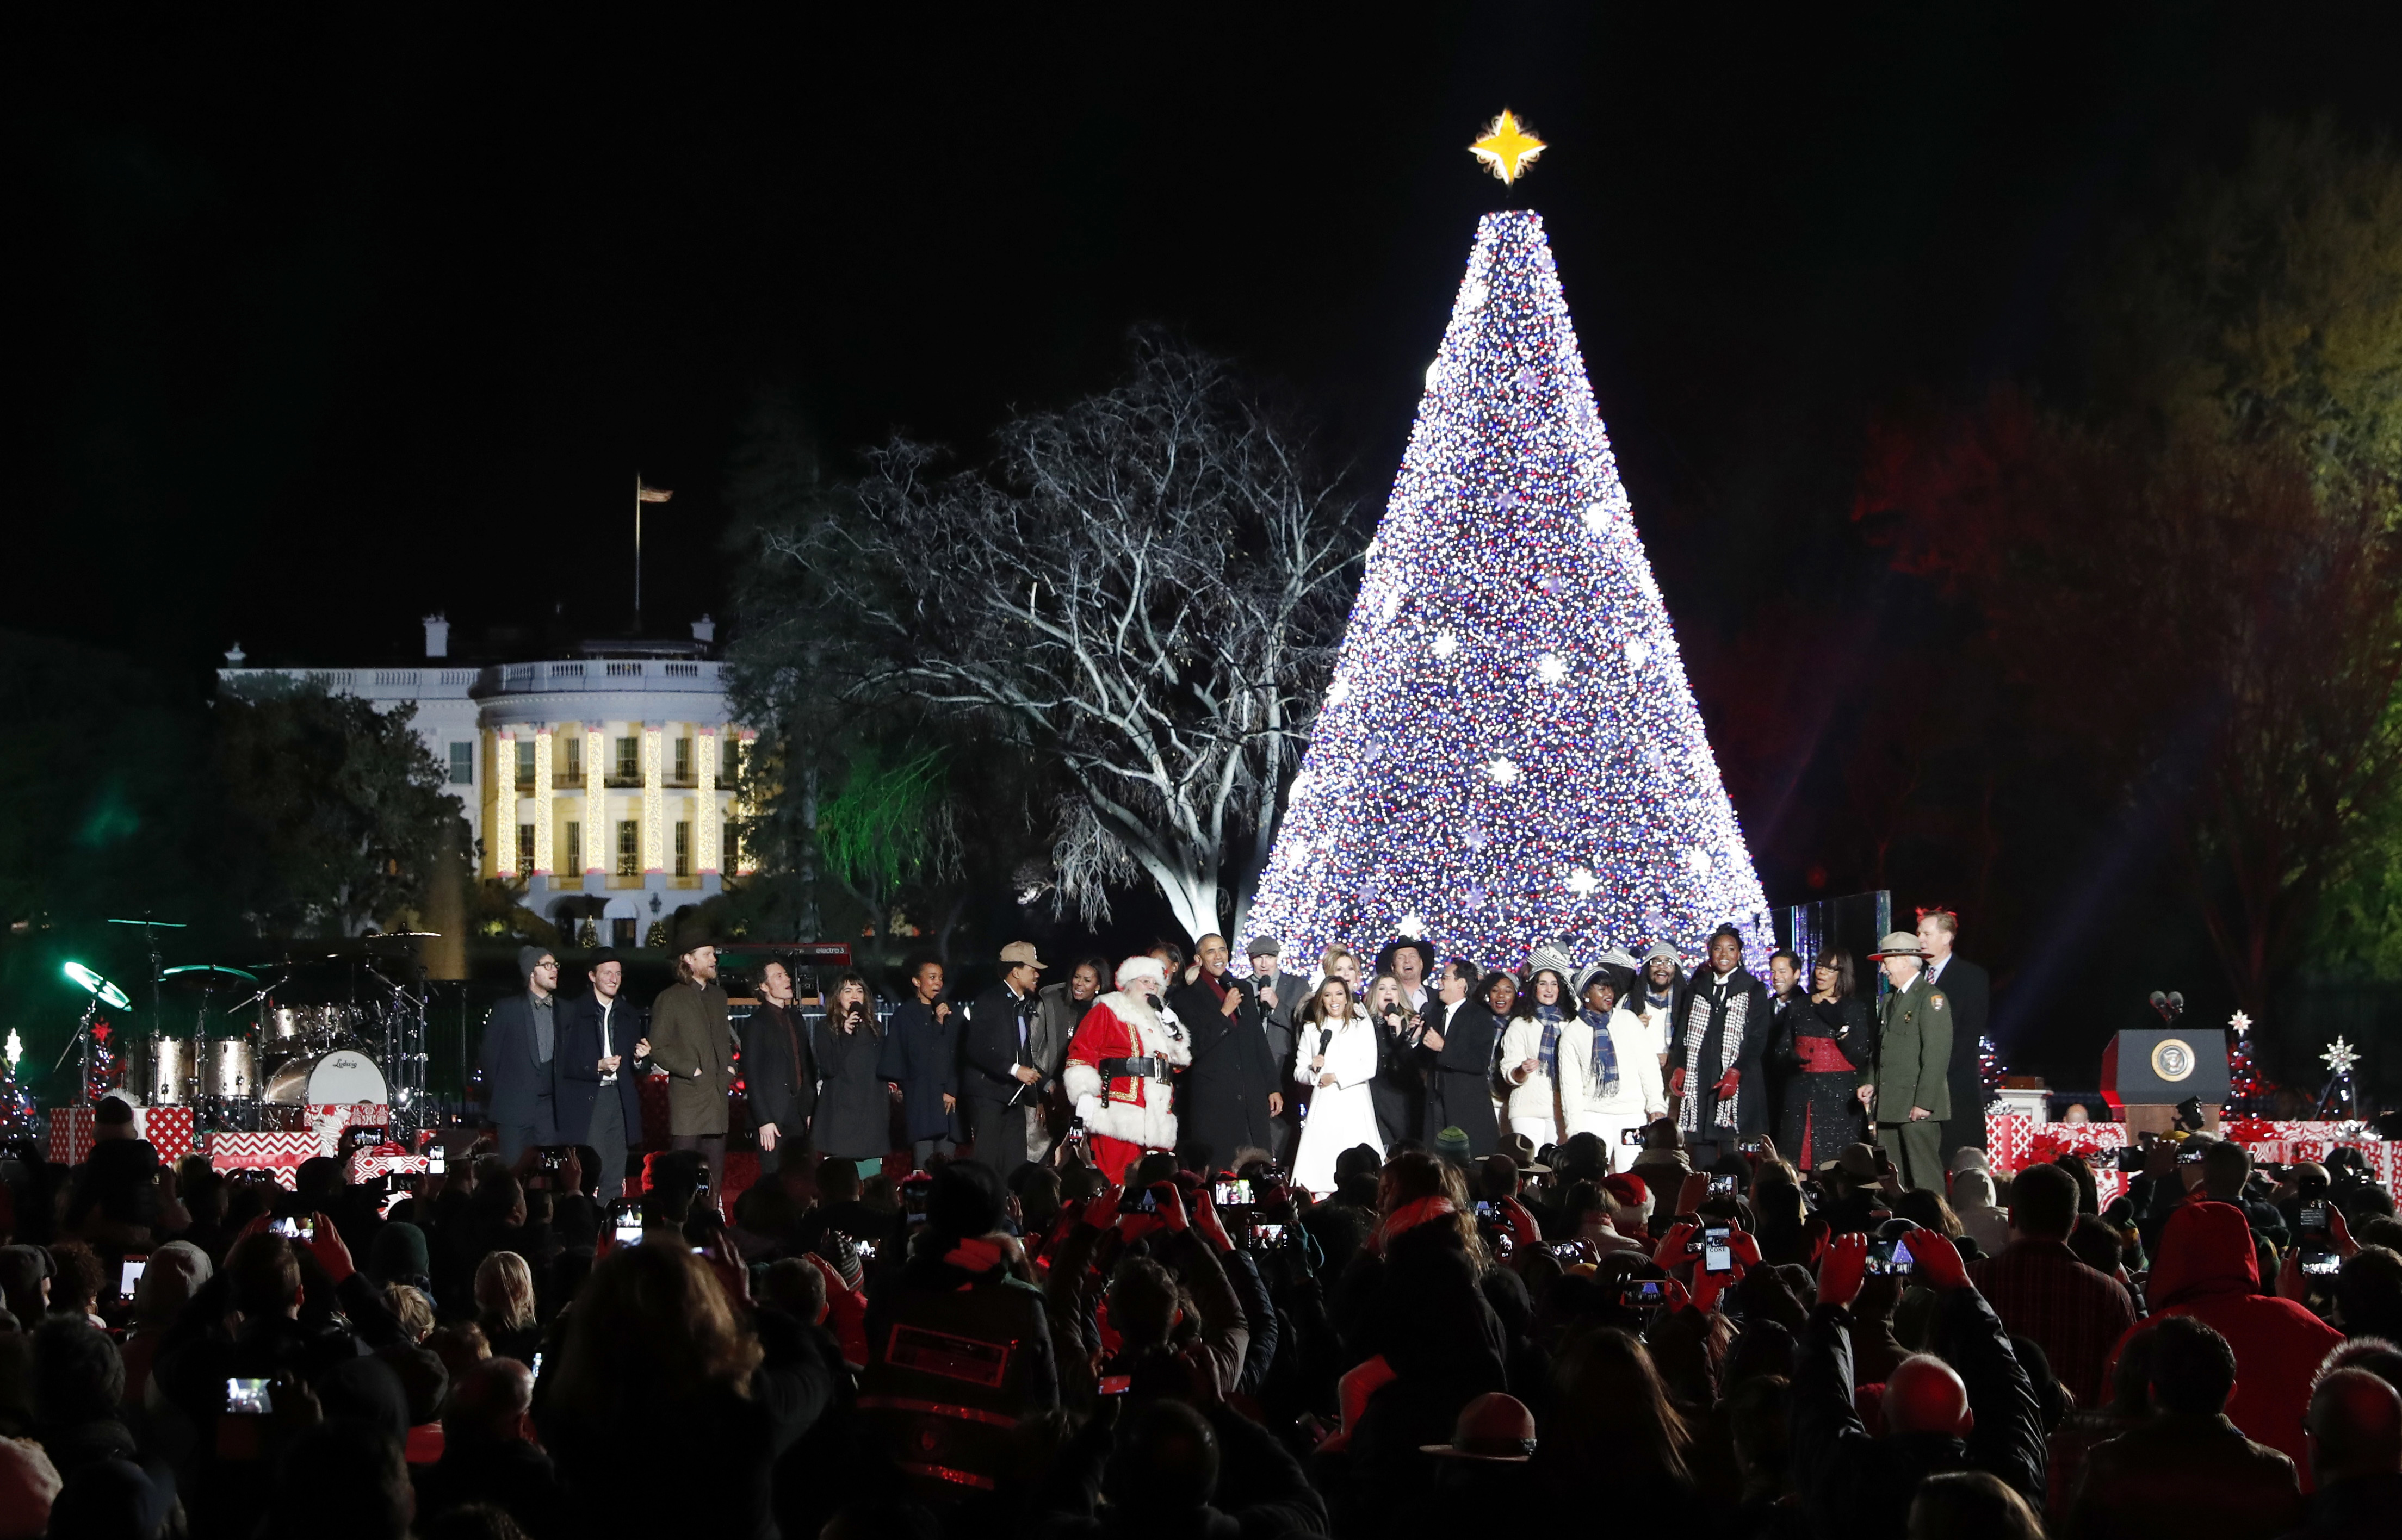 National Christmas Tree Lighting: When you can get 2017 lottery ...